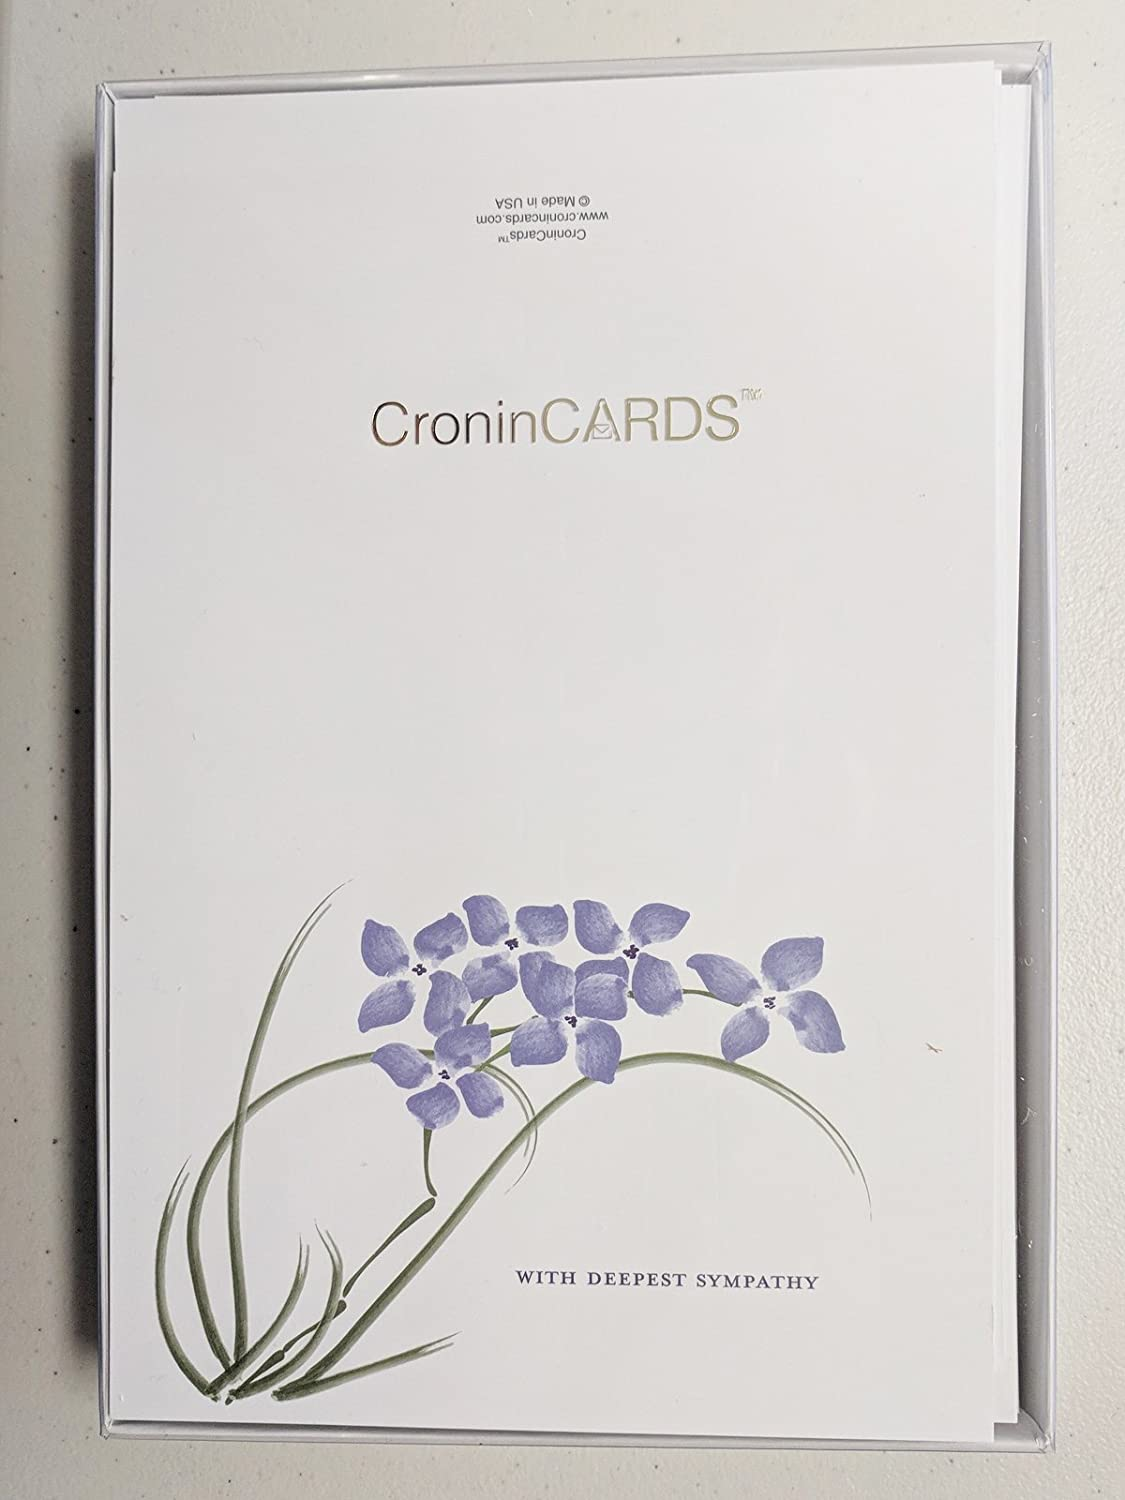 Amazon sympathy cards violets box of 30 blank note cards amazon sympathy cards violets box of 30 blank note cards and 32 env made in usa by cronincards office products izmirmasajfo